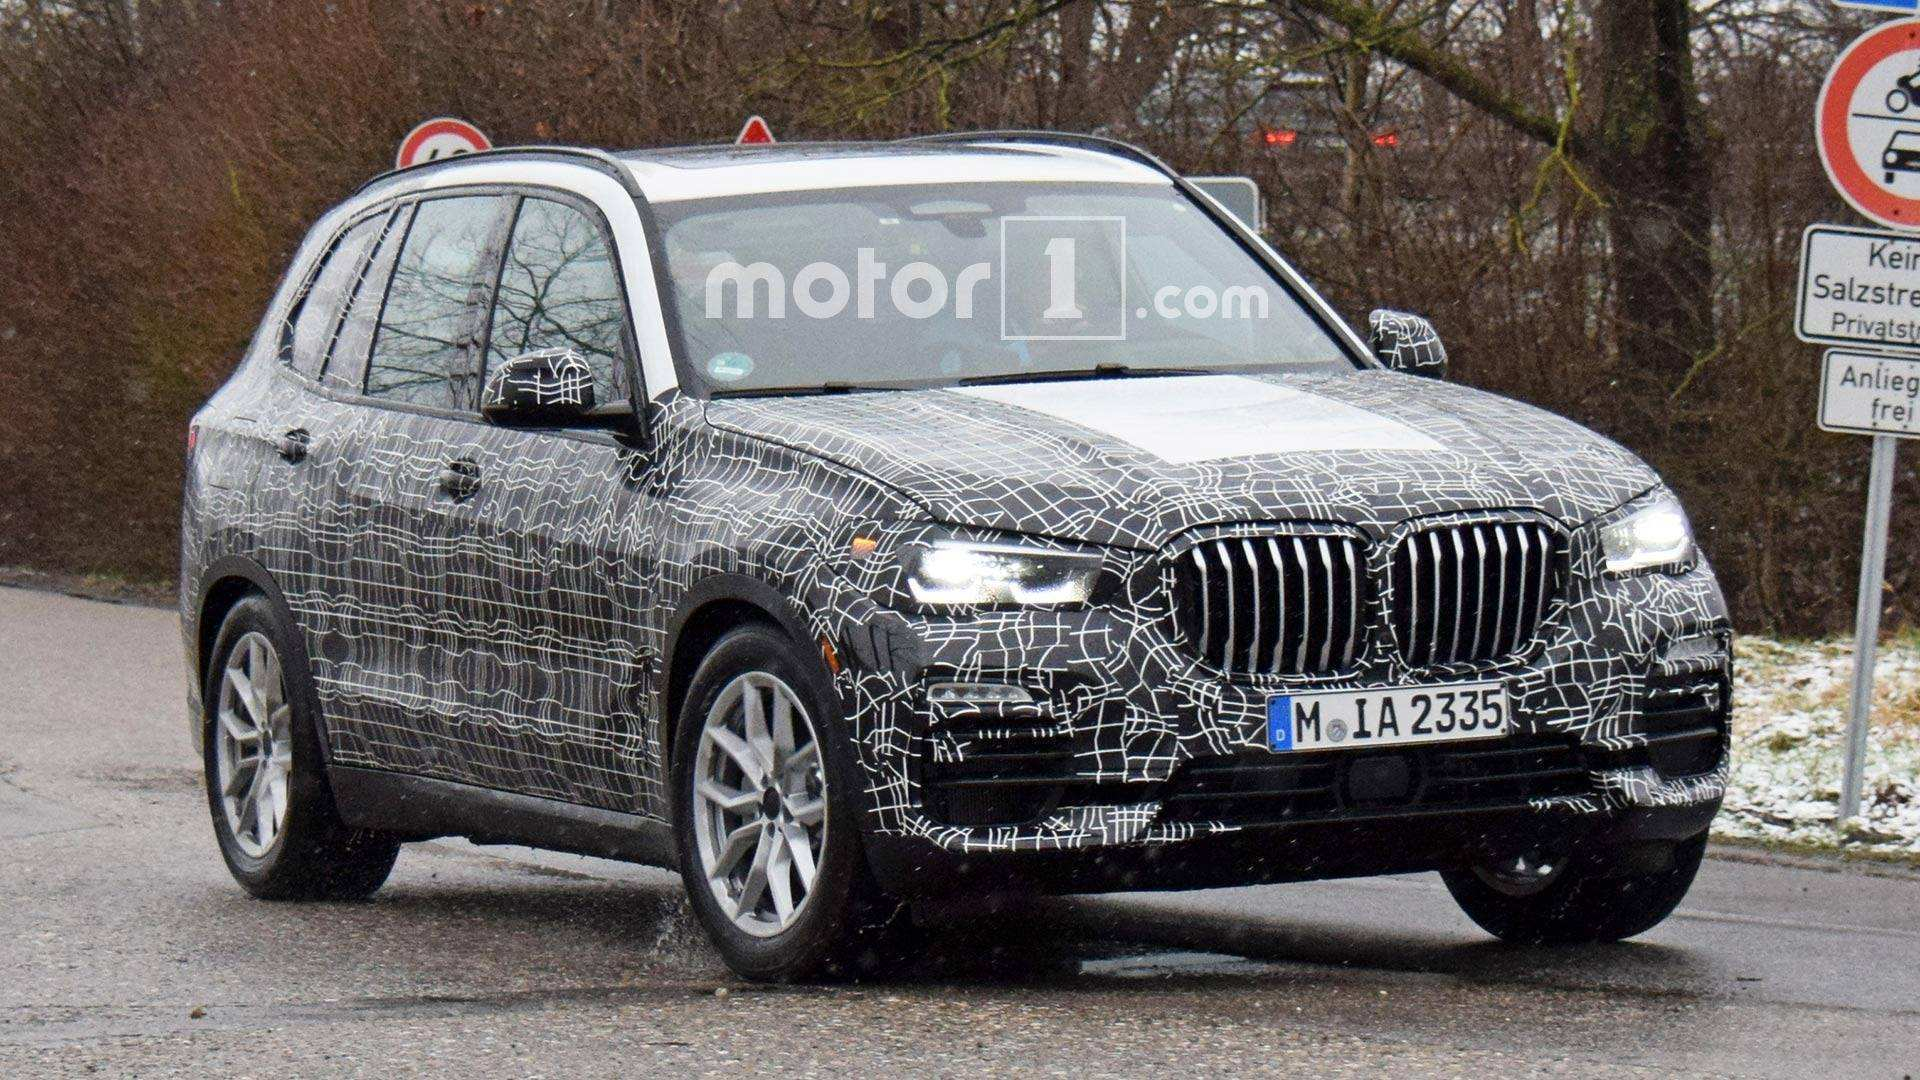 47 All New 2019 Bmw Suv Performance with 2019 Bmw Suv